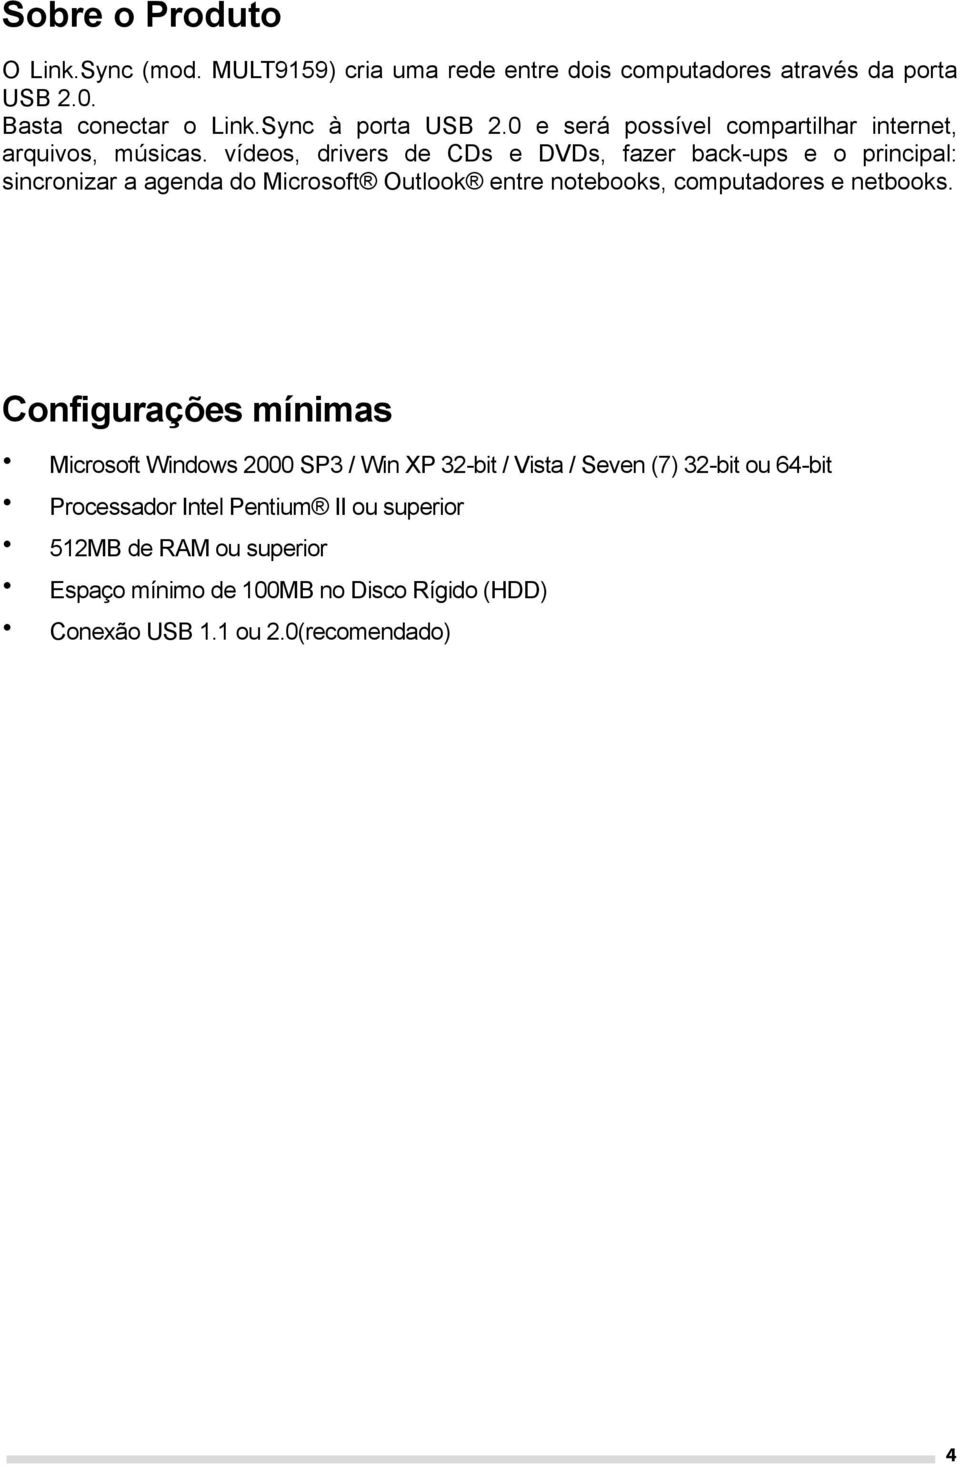 vídeos, drivers de CDs e DVDs, fazer back-ups e o principal: sincronizar a agenda do Microsoft Outlook entre notebooks, computadores e netbooks.